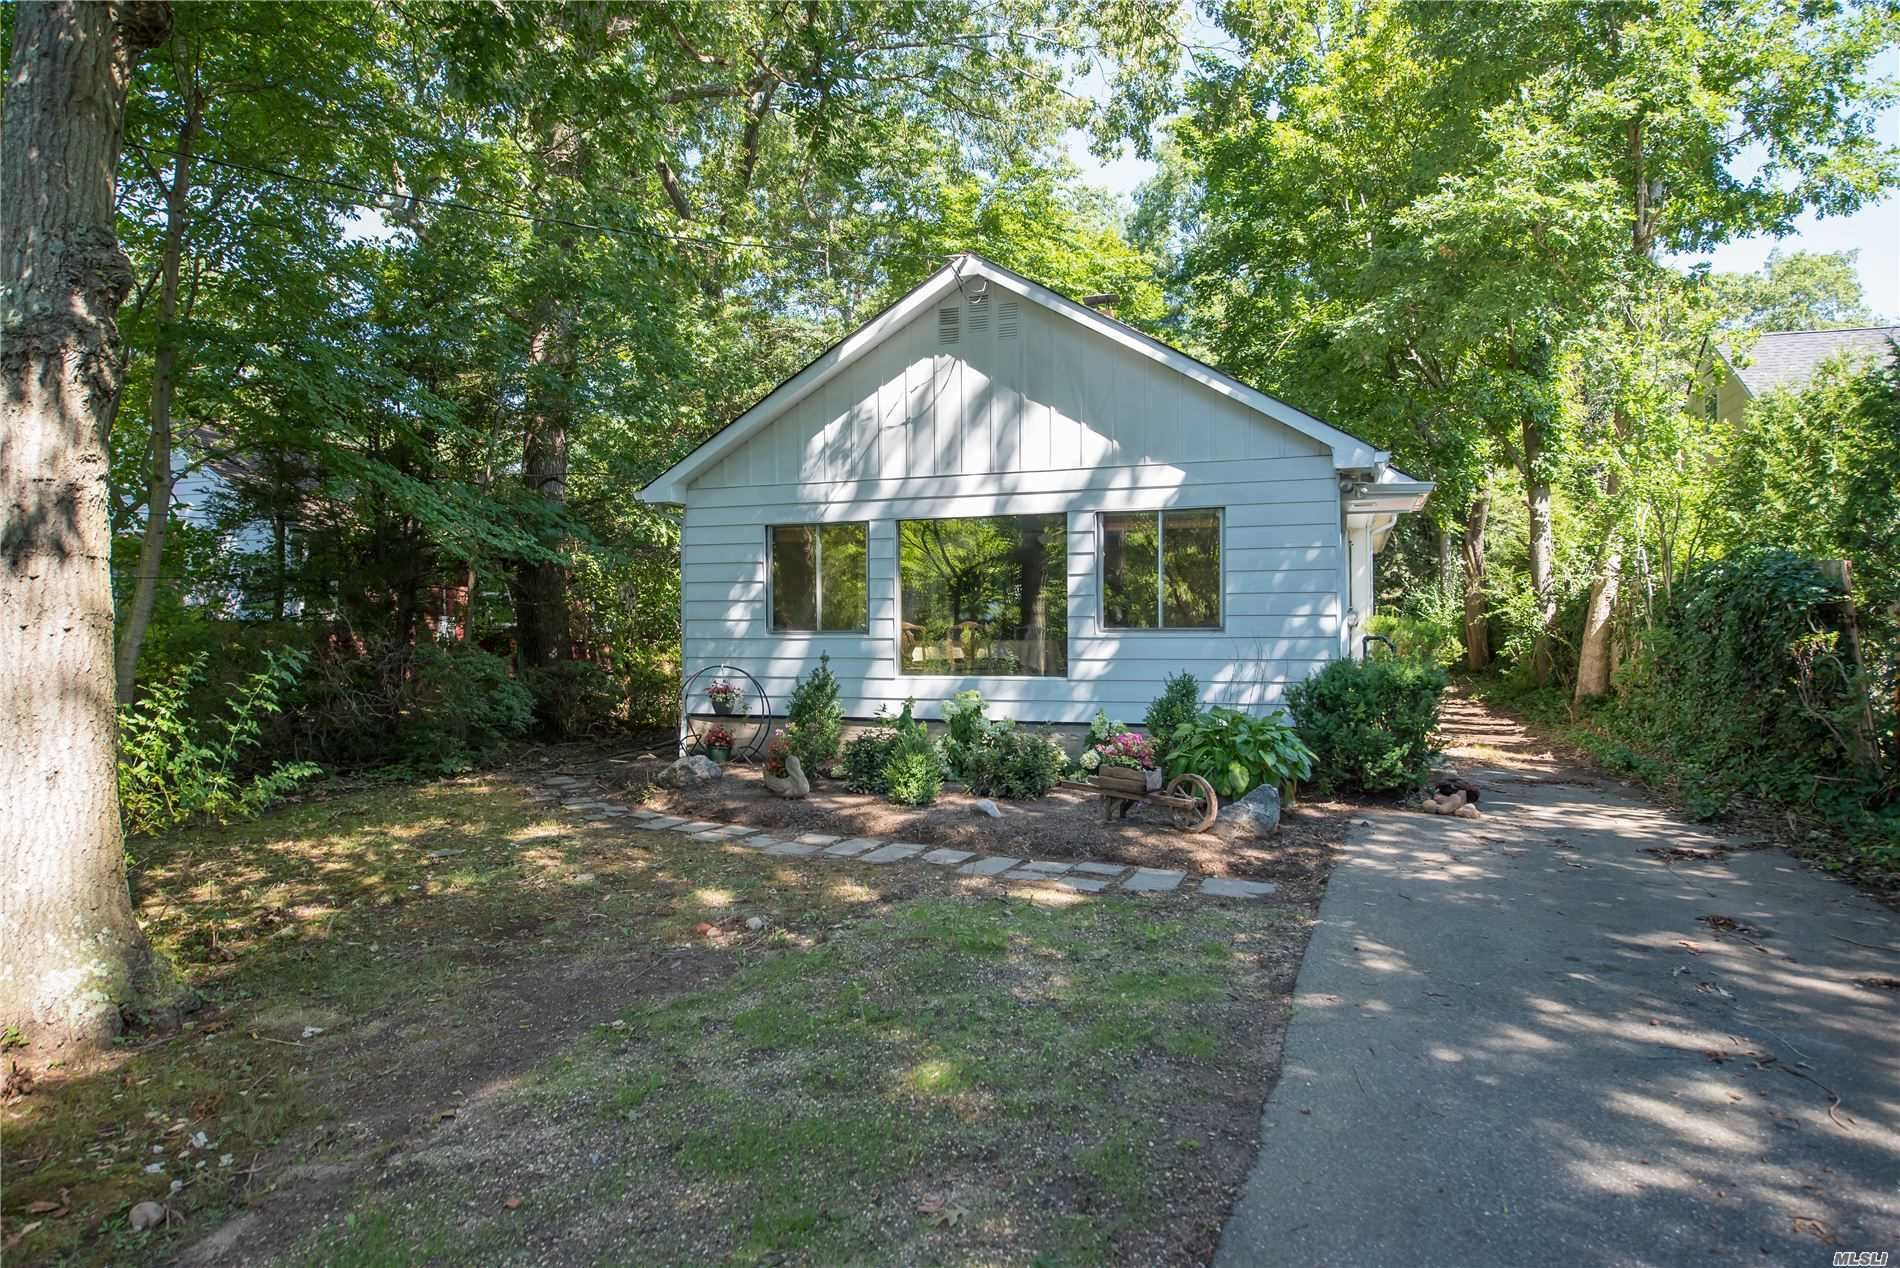 217 Claypitts Road, East Northport, NY 11731 - MLS#: 3239187